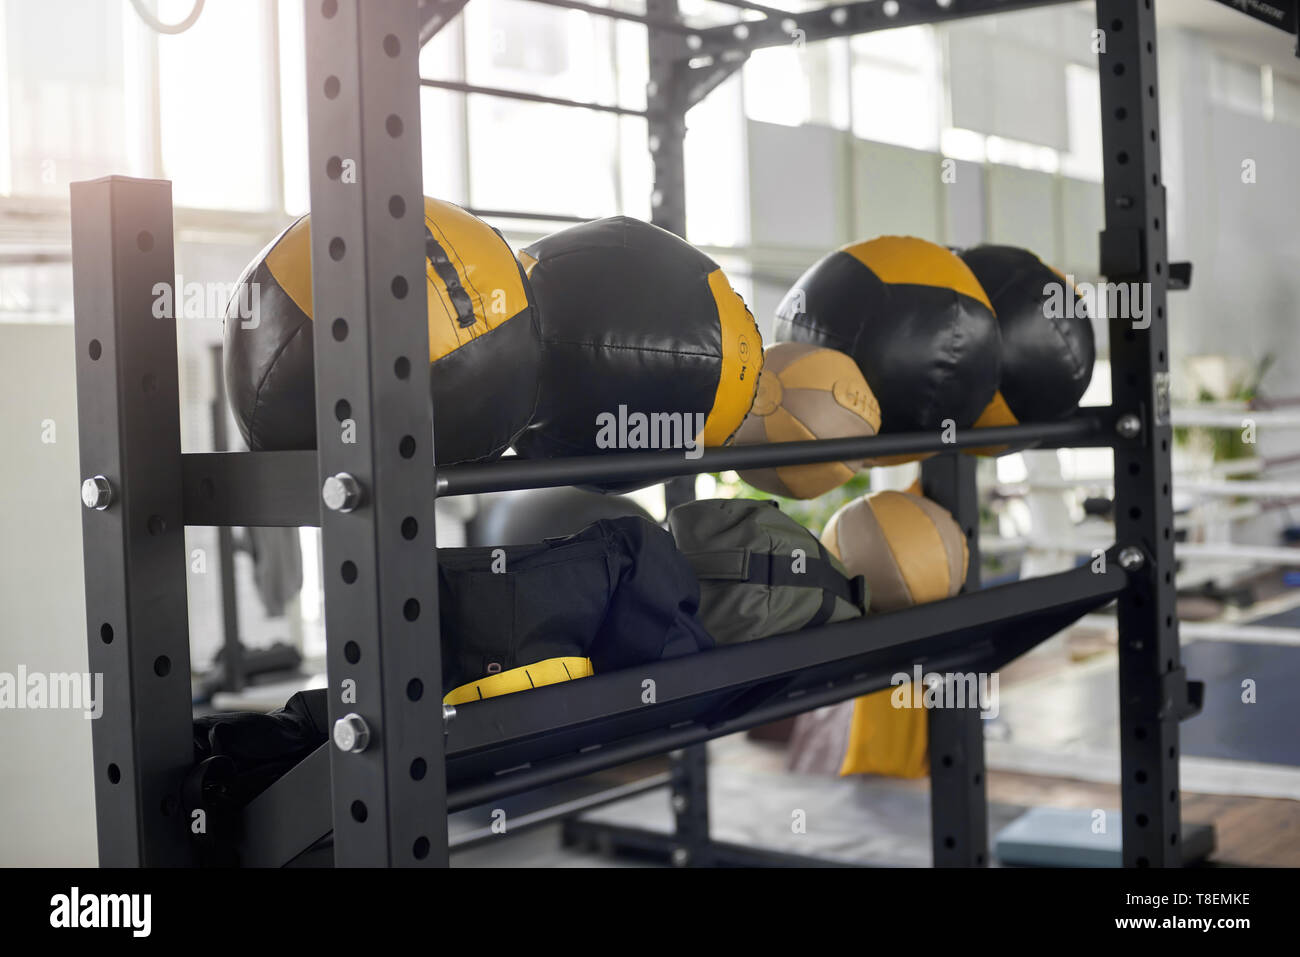 Rack with round punching bags at gym. Equipment for boxing at sport club. Set of modern fitness gym. - Stock Image